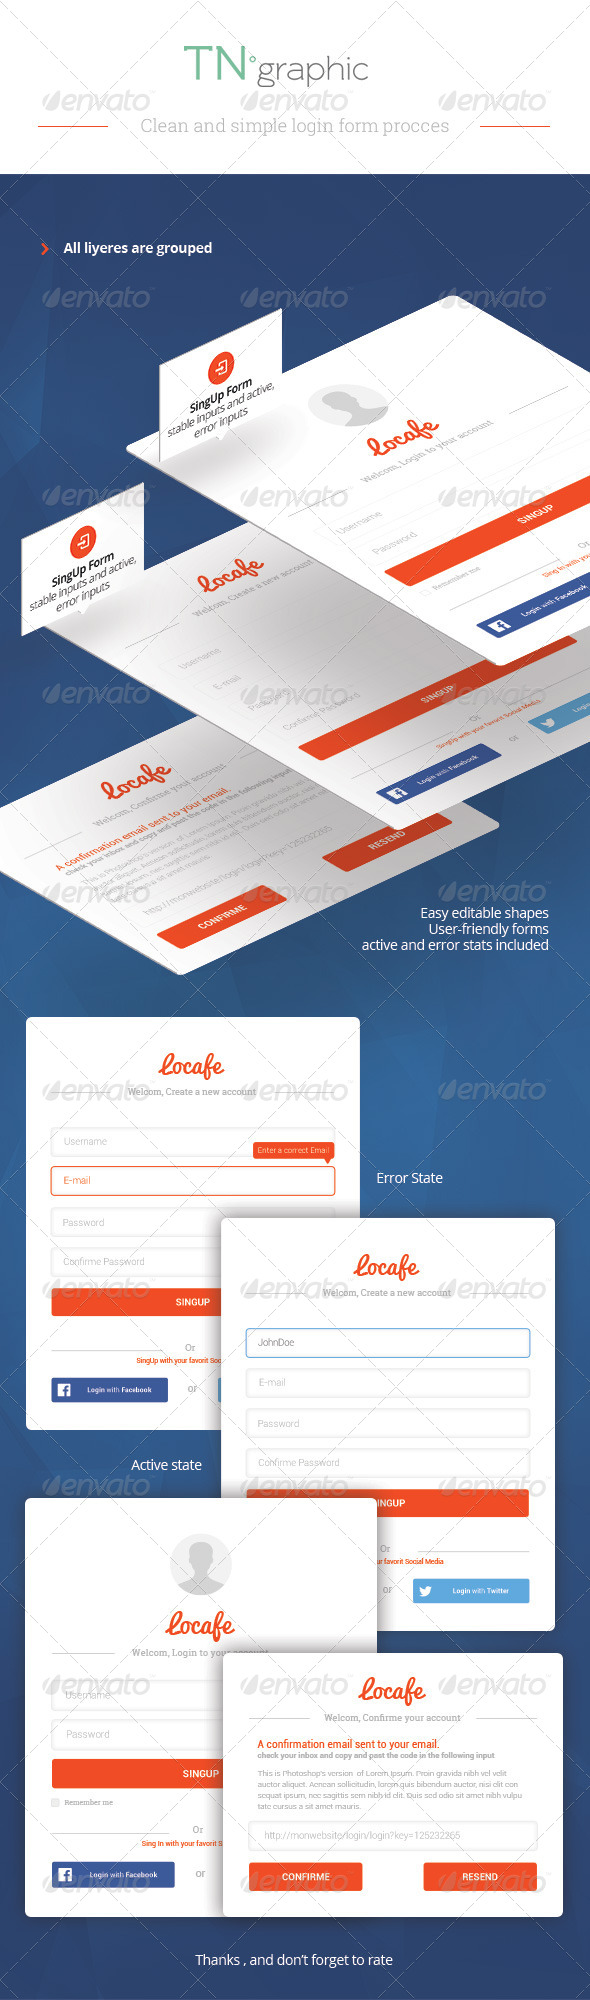 GraphicRiver PSD Login Form 7254308